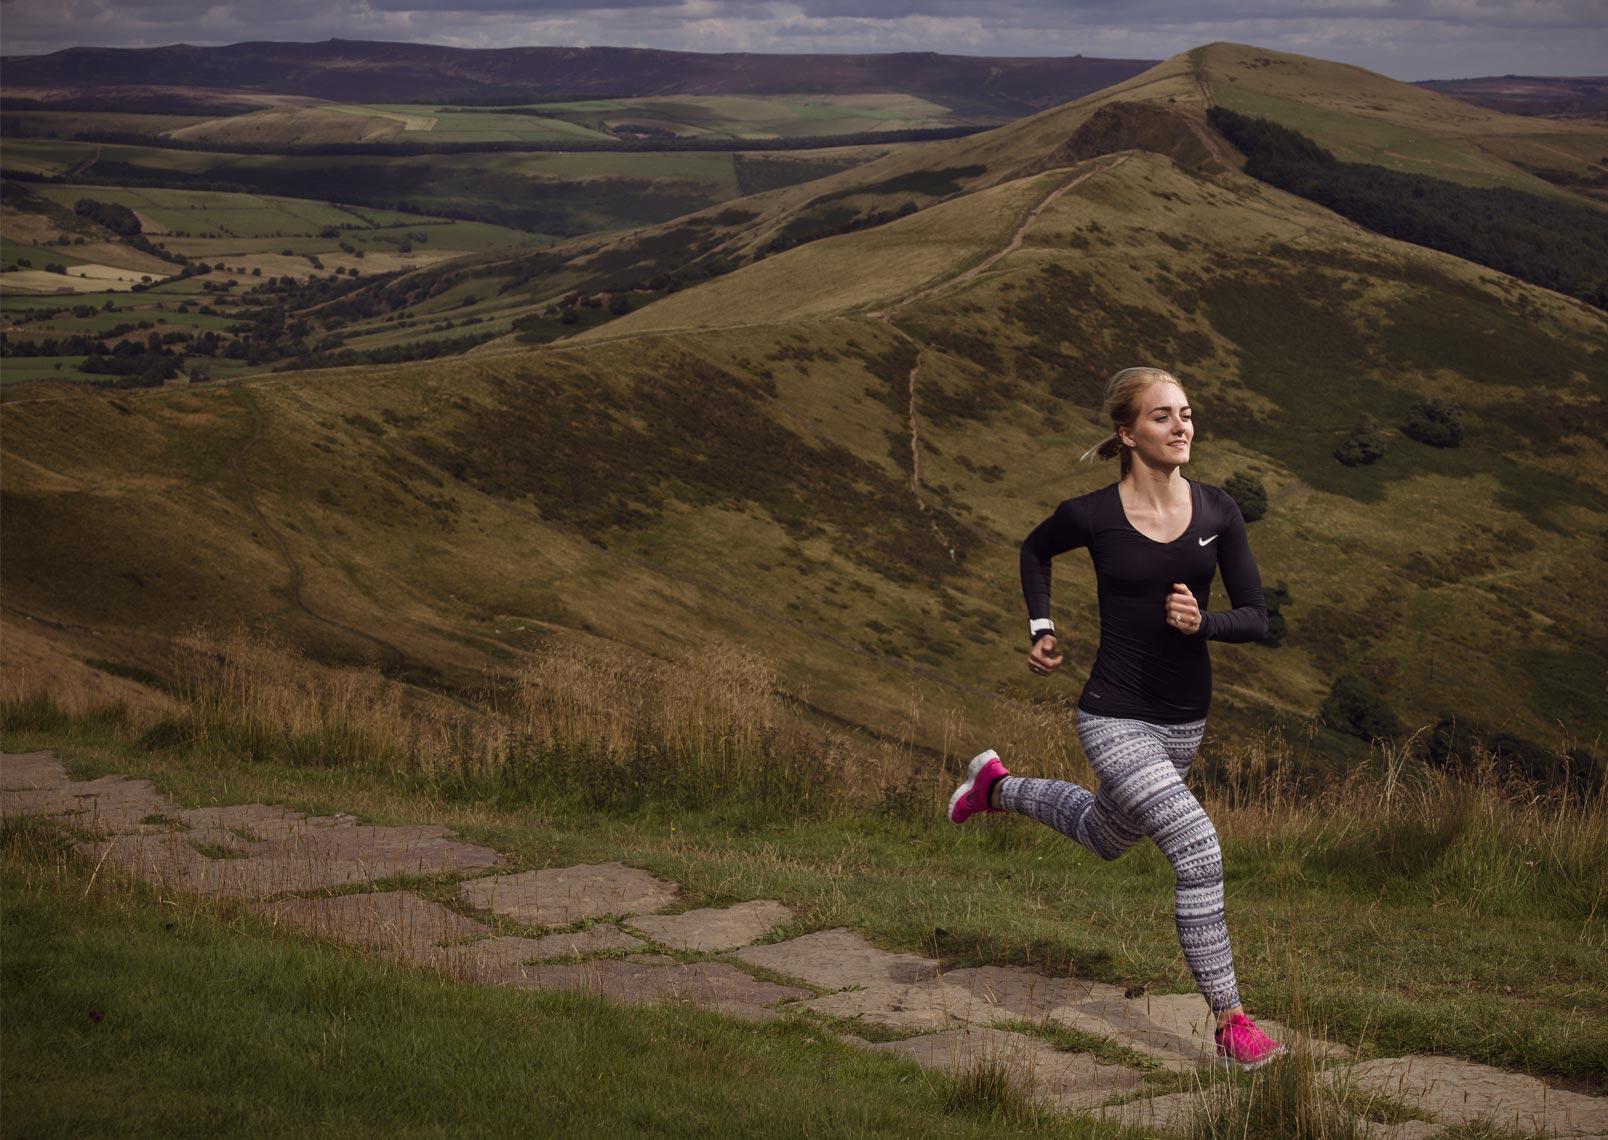 female runner on Mam Tor, Peak District